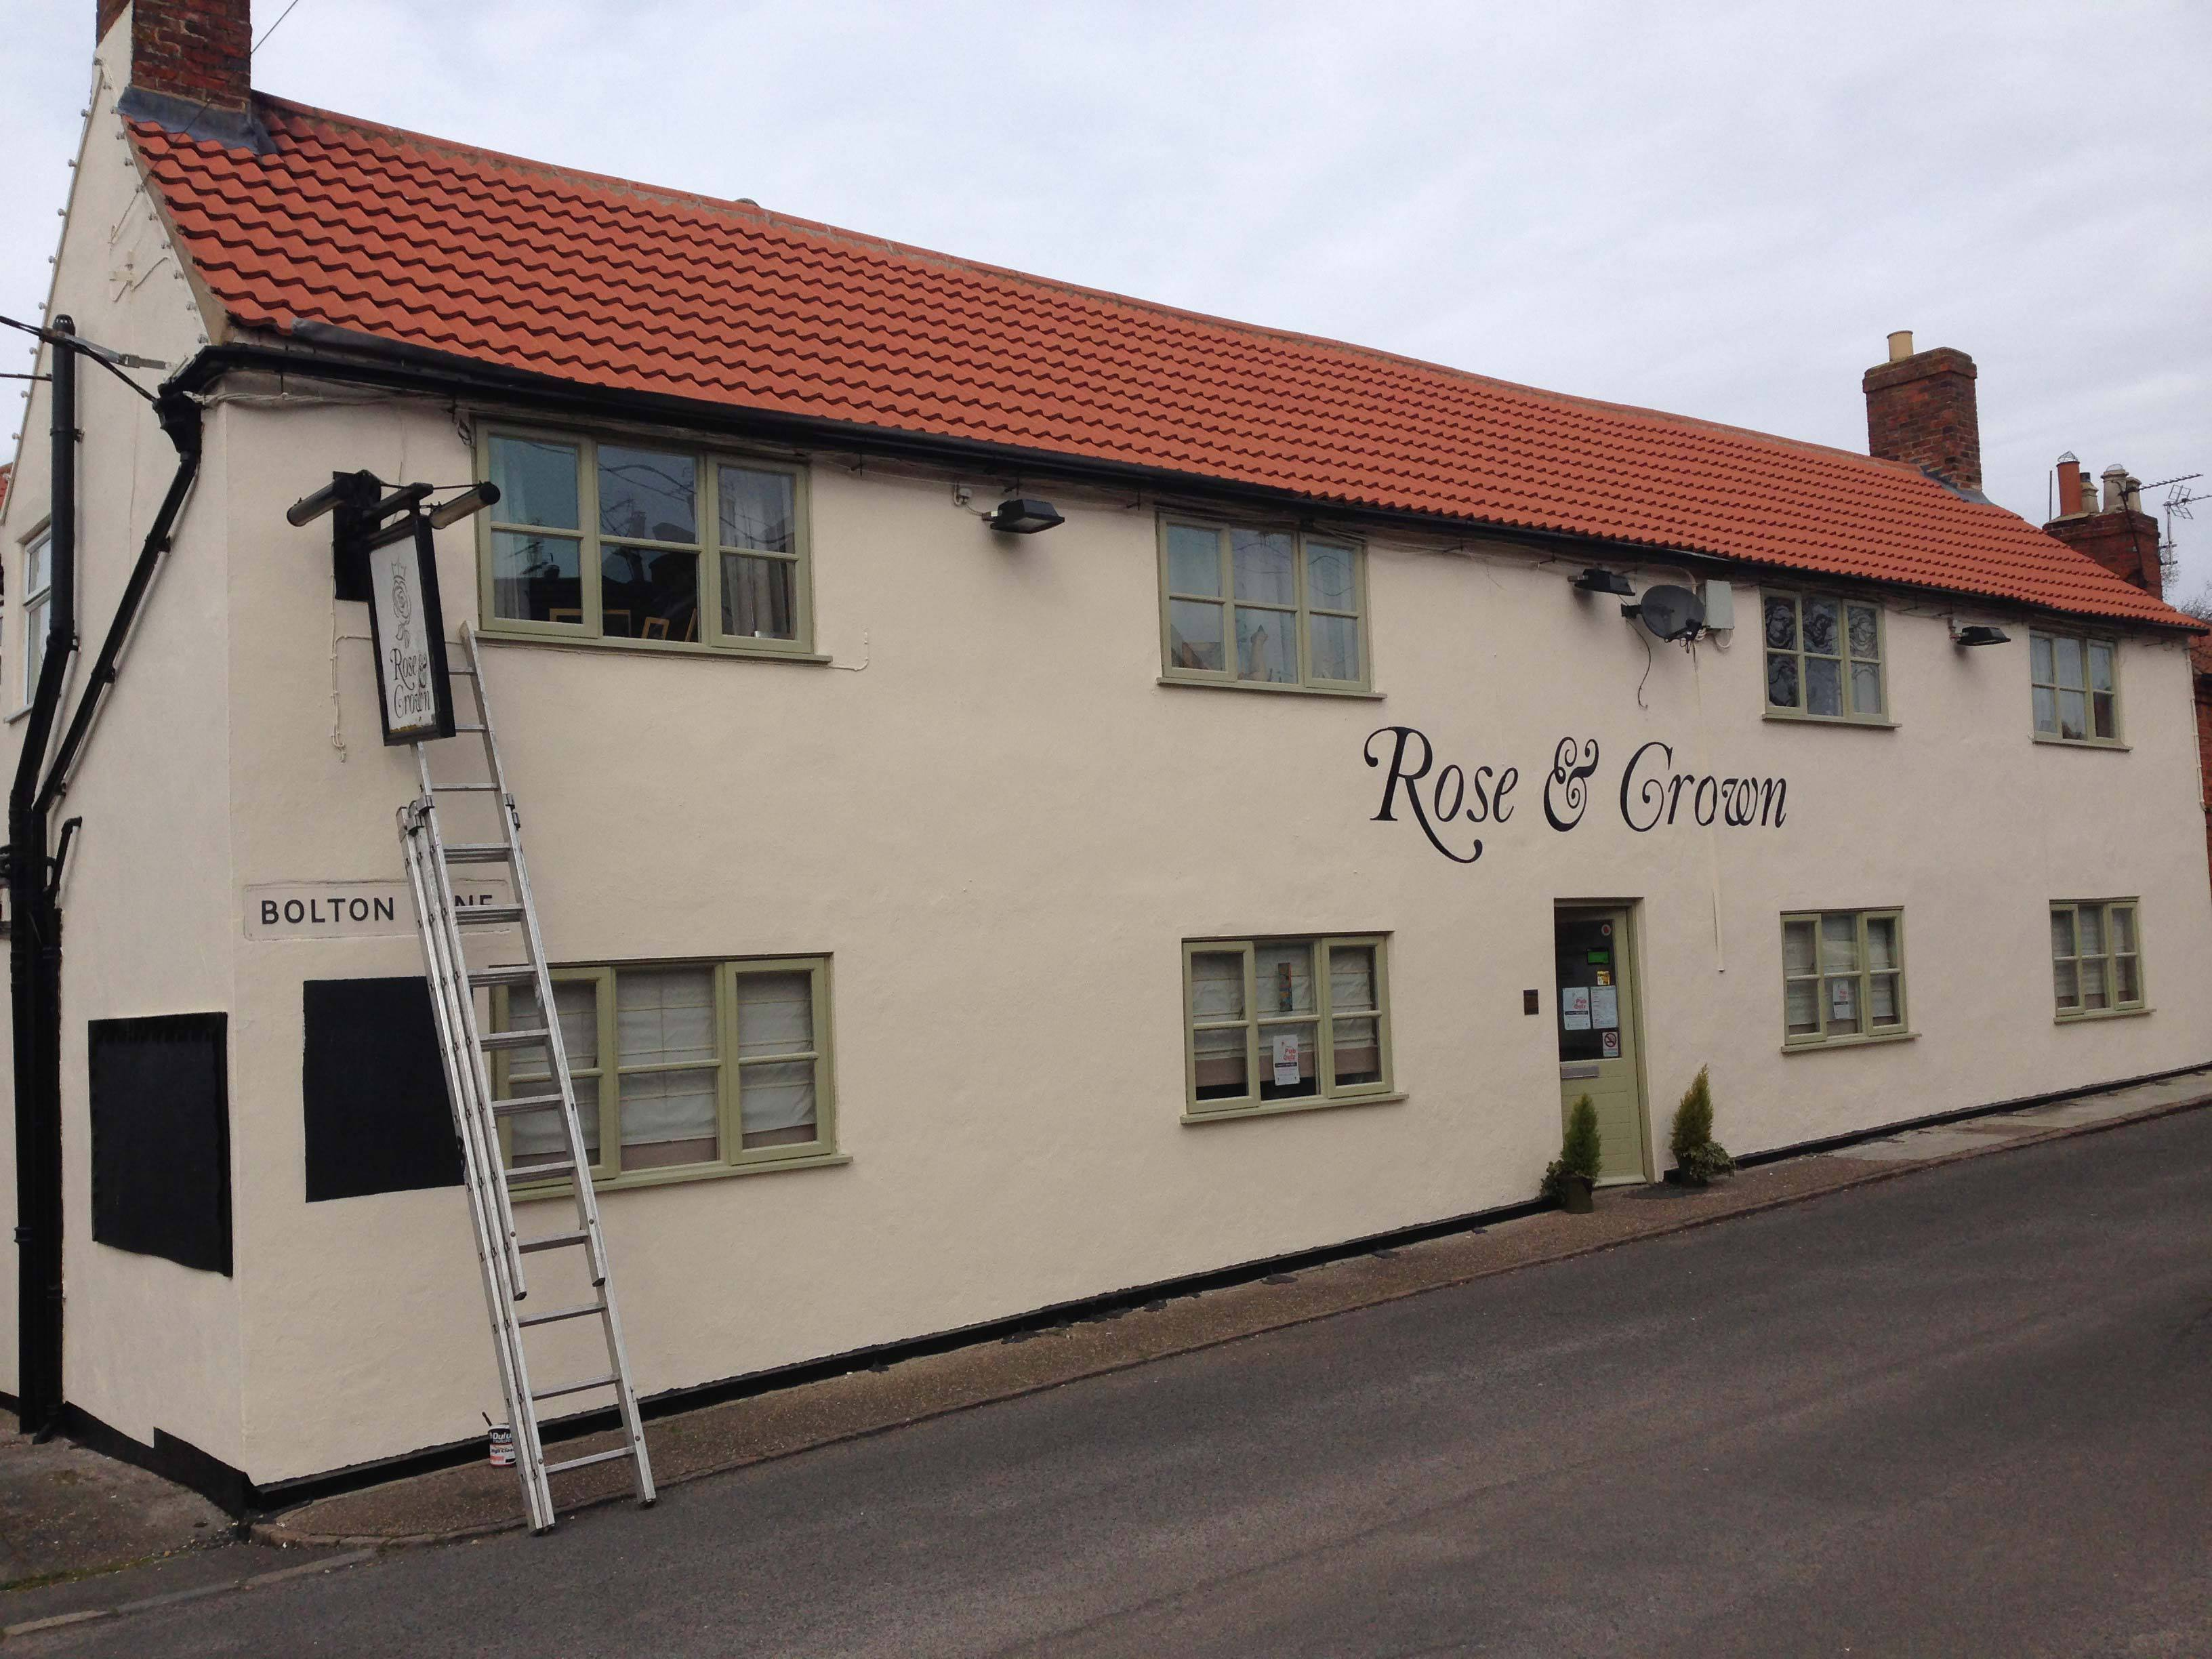 House painted by experts in Grantham, NG